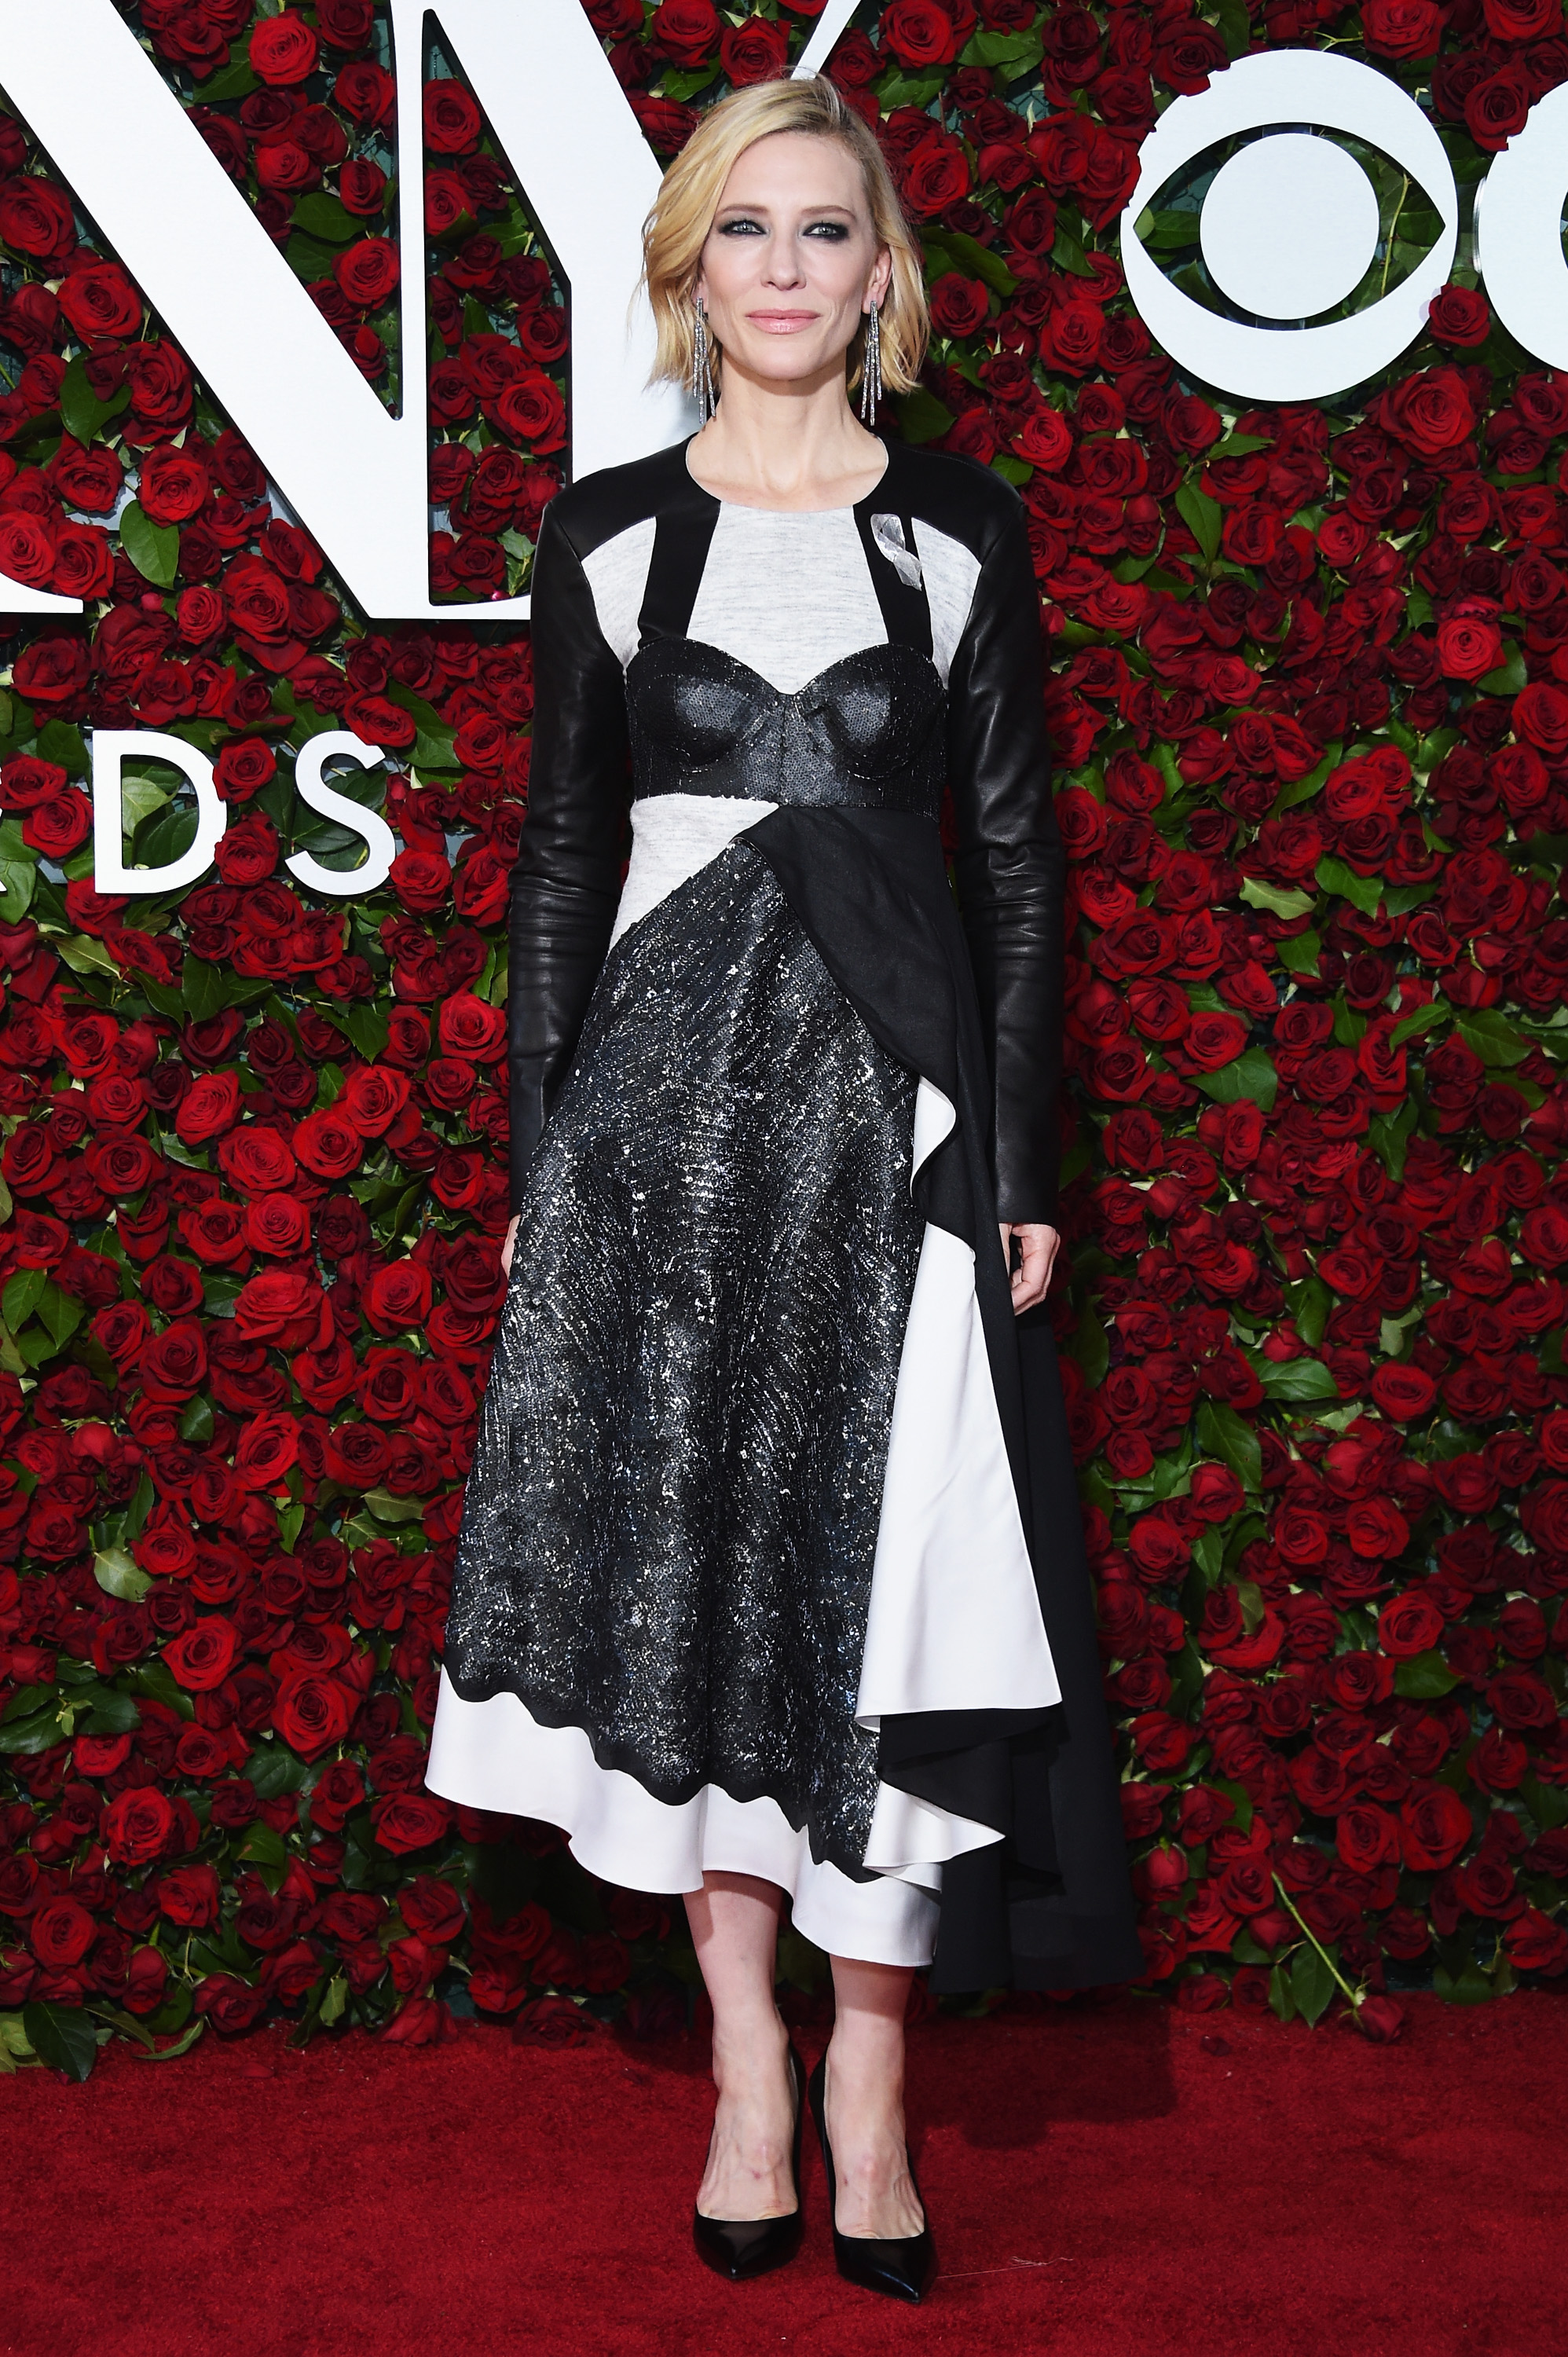 37_at_the_70th_annual_tony_awards_in_2016_wearing_louis_vuitton.jpg